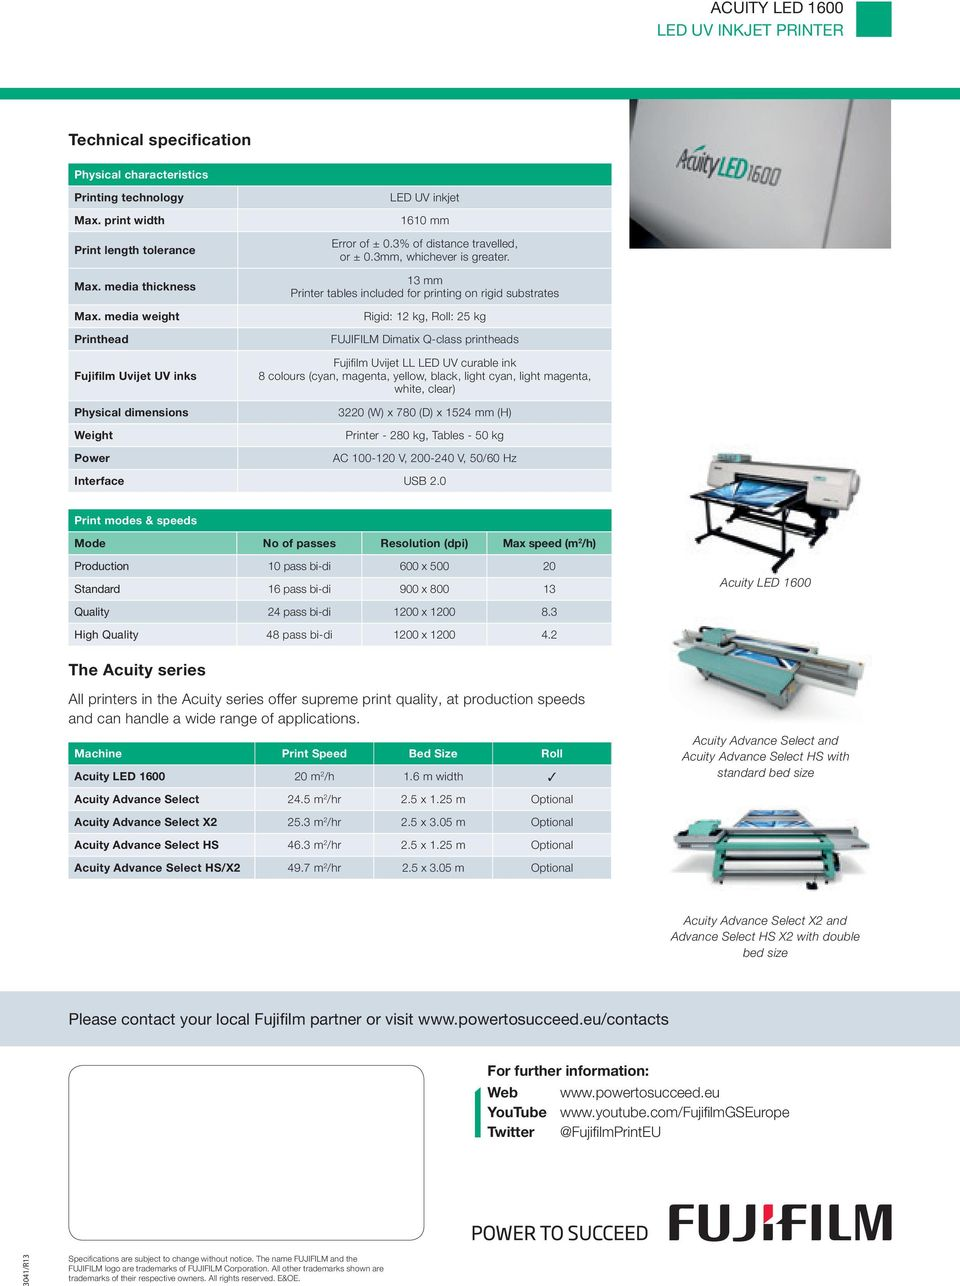 13 mm Printer tables included for printing on rigid substrates Rigid: 12 kg, Roll: 25 kg FUJIFI Dimatix Q-class printheads Fujifi lm Uvijet LL LED UV curable ink 8 colours (cyan, magenta, yellow,